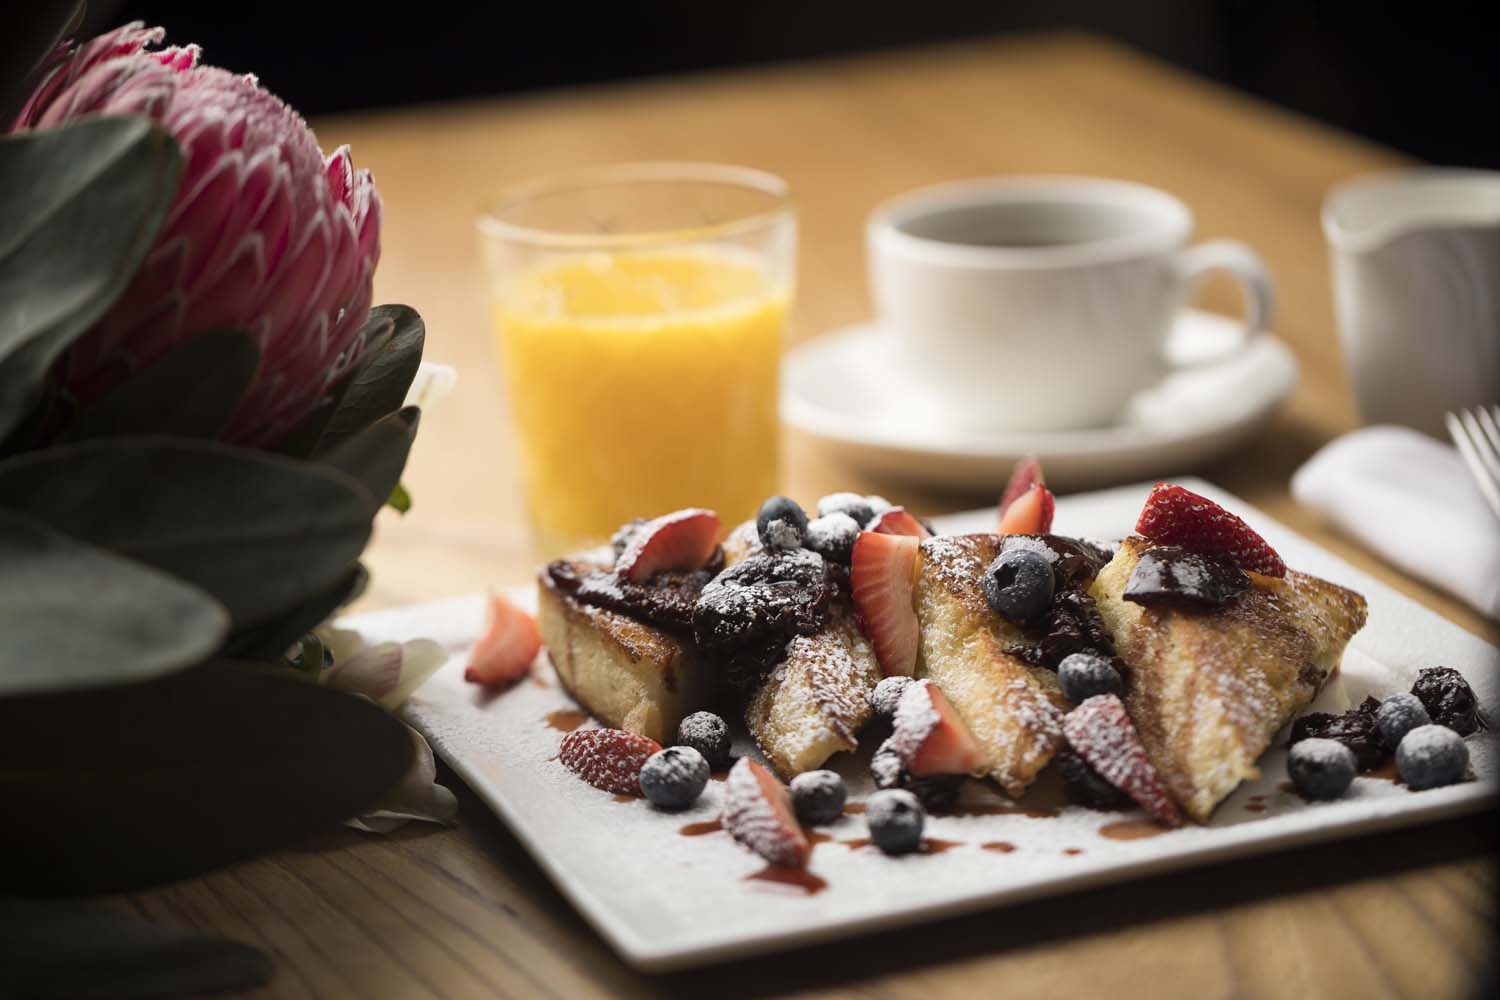 Mothers Day French Toast and fruit with flowers